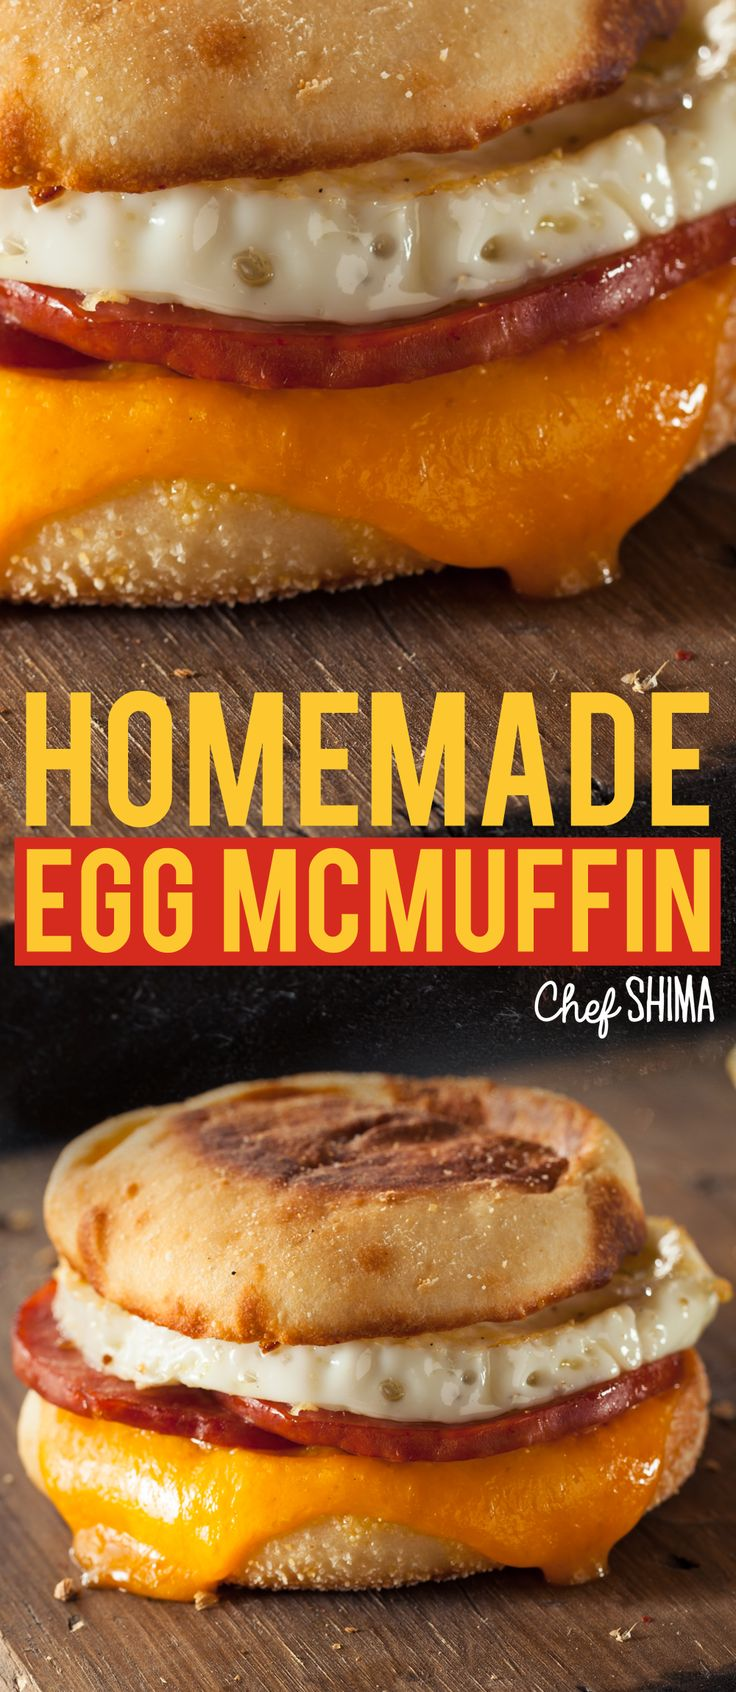 Homemade Egg McMuffin | The best McMuffin recipe!!! PERIOD!